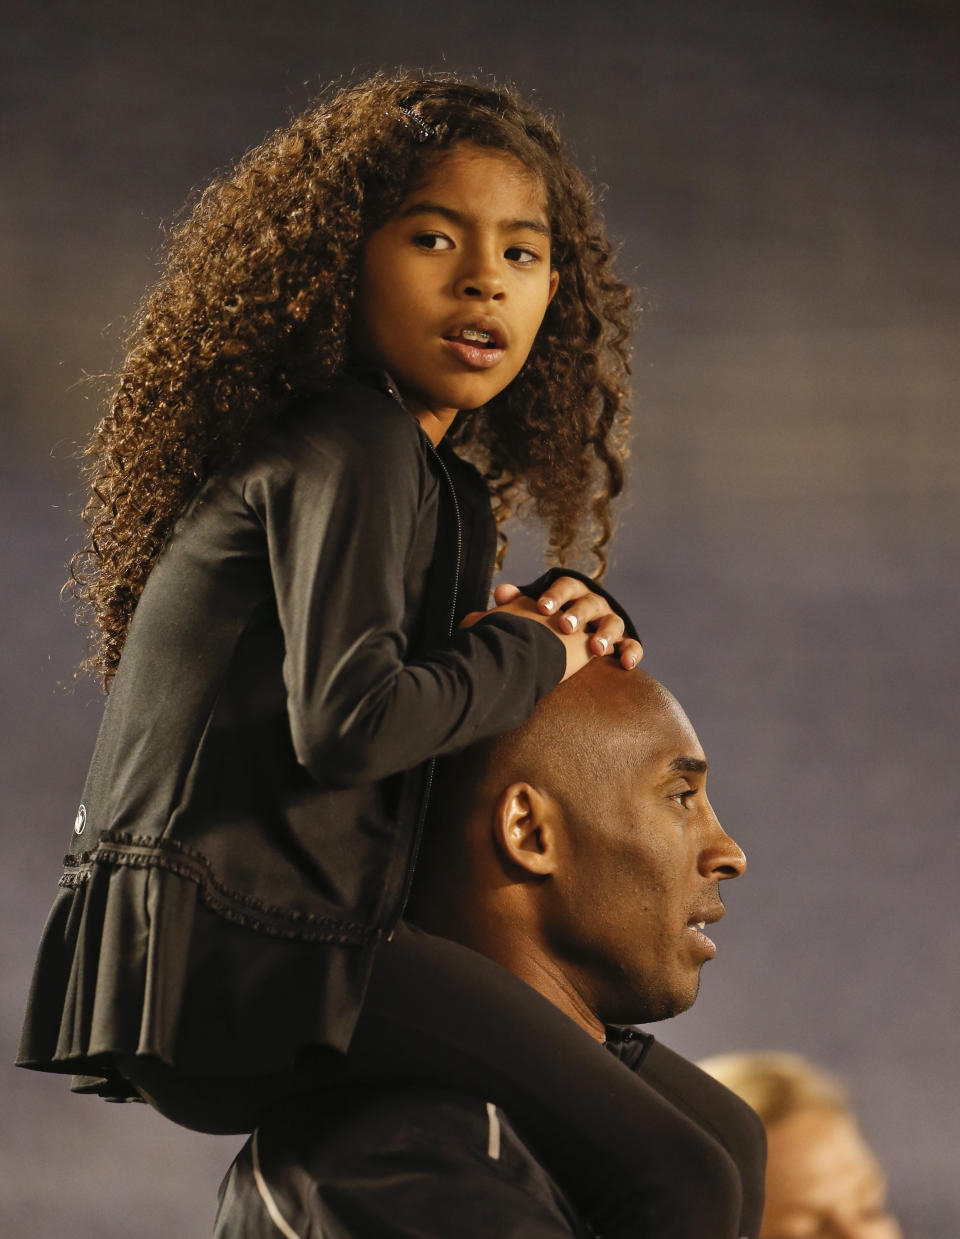 Gianna Bryant sits on the shoulders of her father, Kobe Bryant, as they attend the women's soccer match between the United States and China Thursday, April 10, 2014, in San Diego. (AP Photo/Lenny Ignelzi)